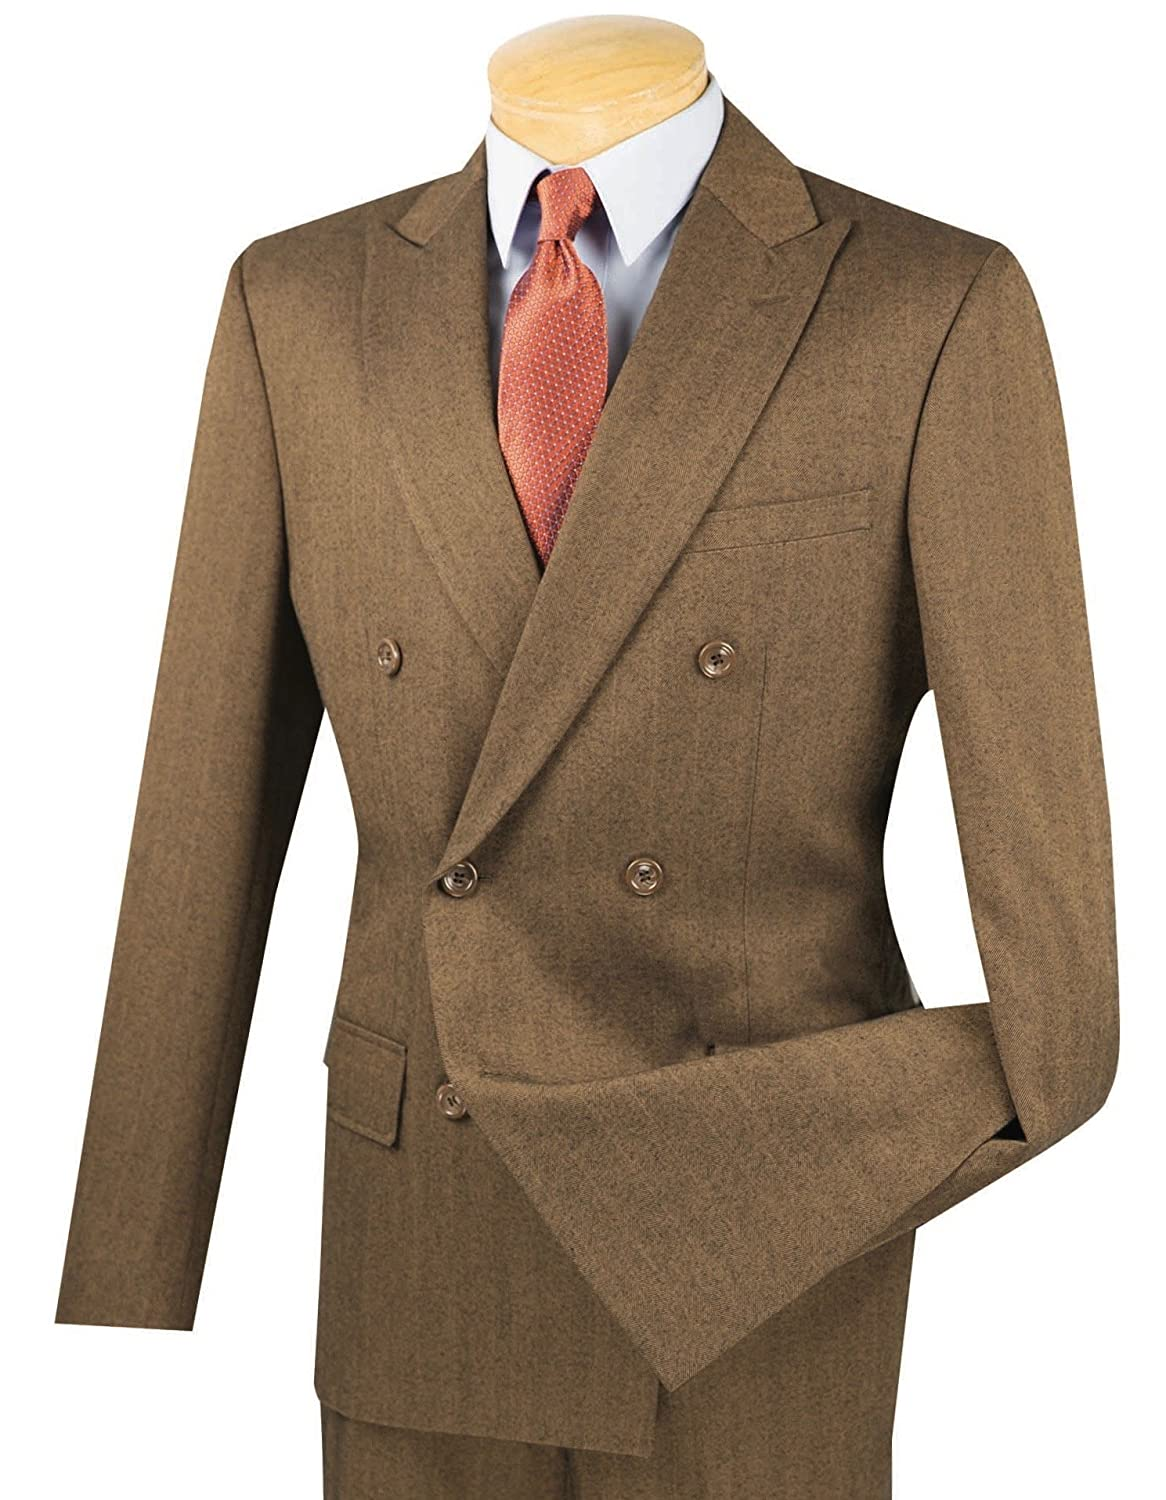 1920s Men's Suits History VINCI Mens Brushed Herringbone Striped Double Breasted 6 Button Slim-Fit Flannel Suit New $109.95 AT vintagedancer.com